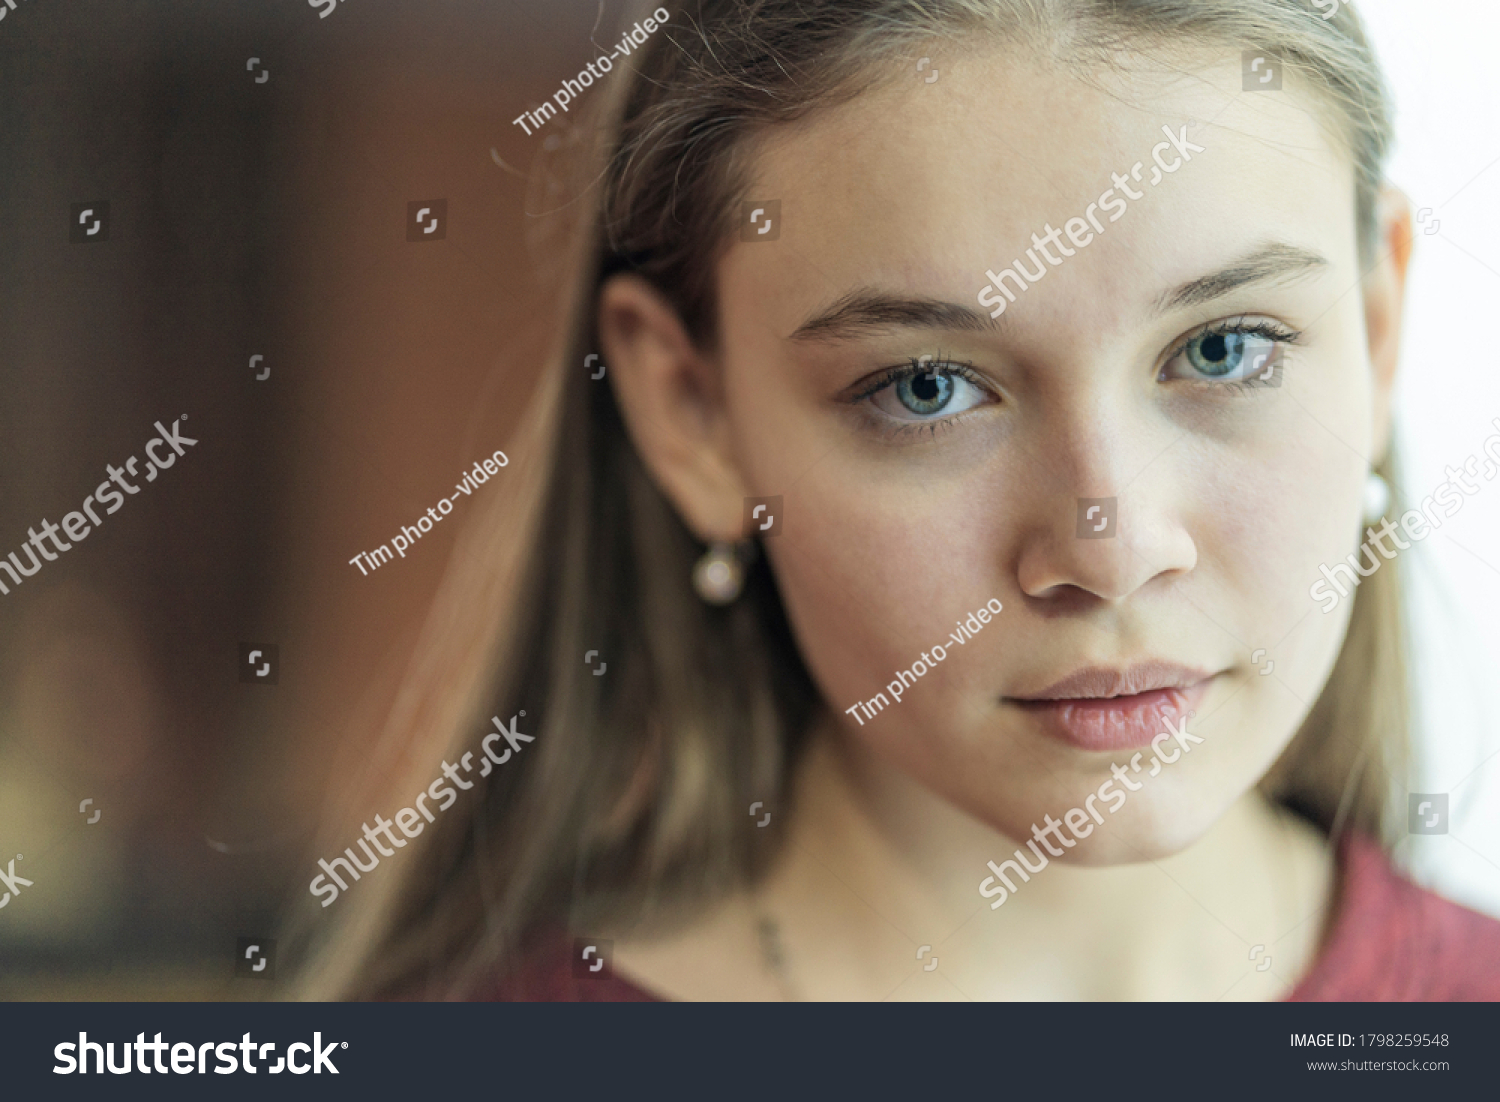 stock-photo-portrait-of-a-young-girl-clo